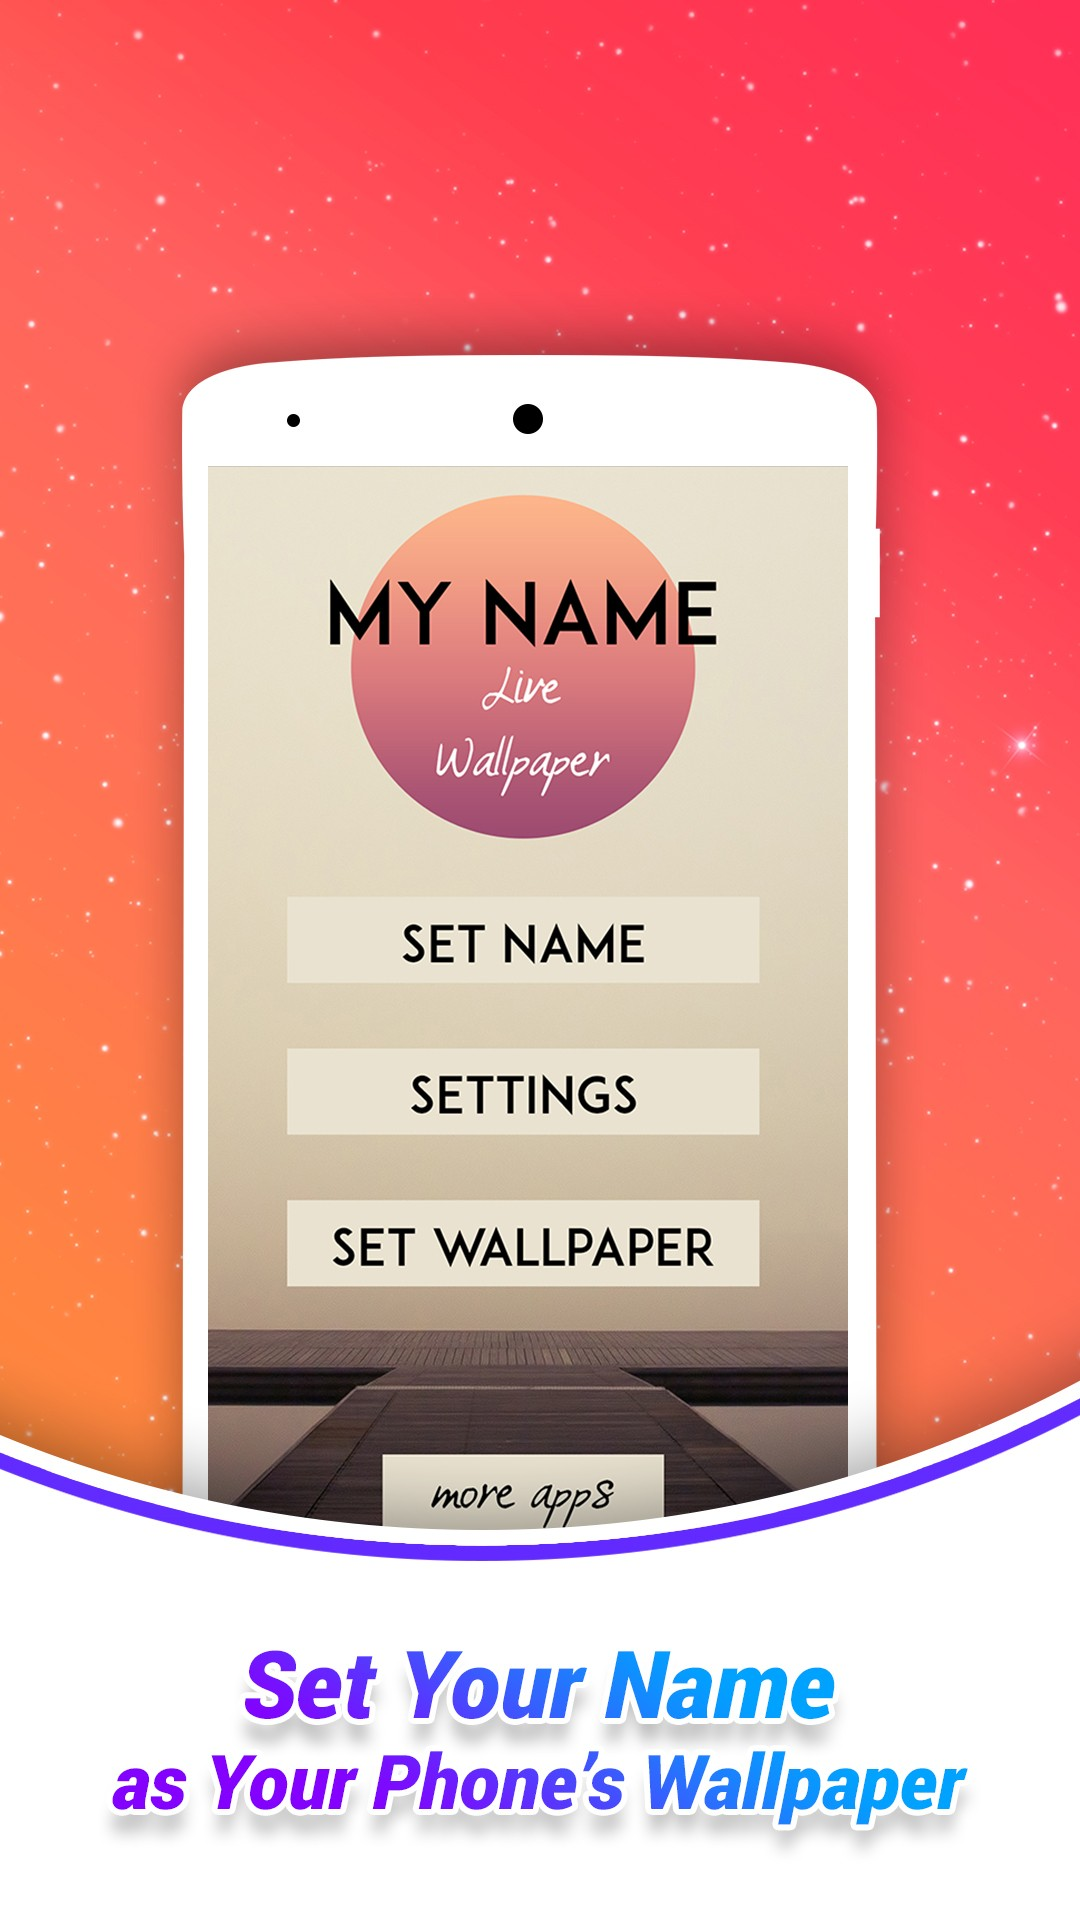 TAGS Wallpaper Live My Name